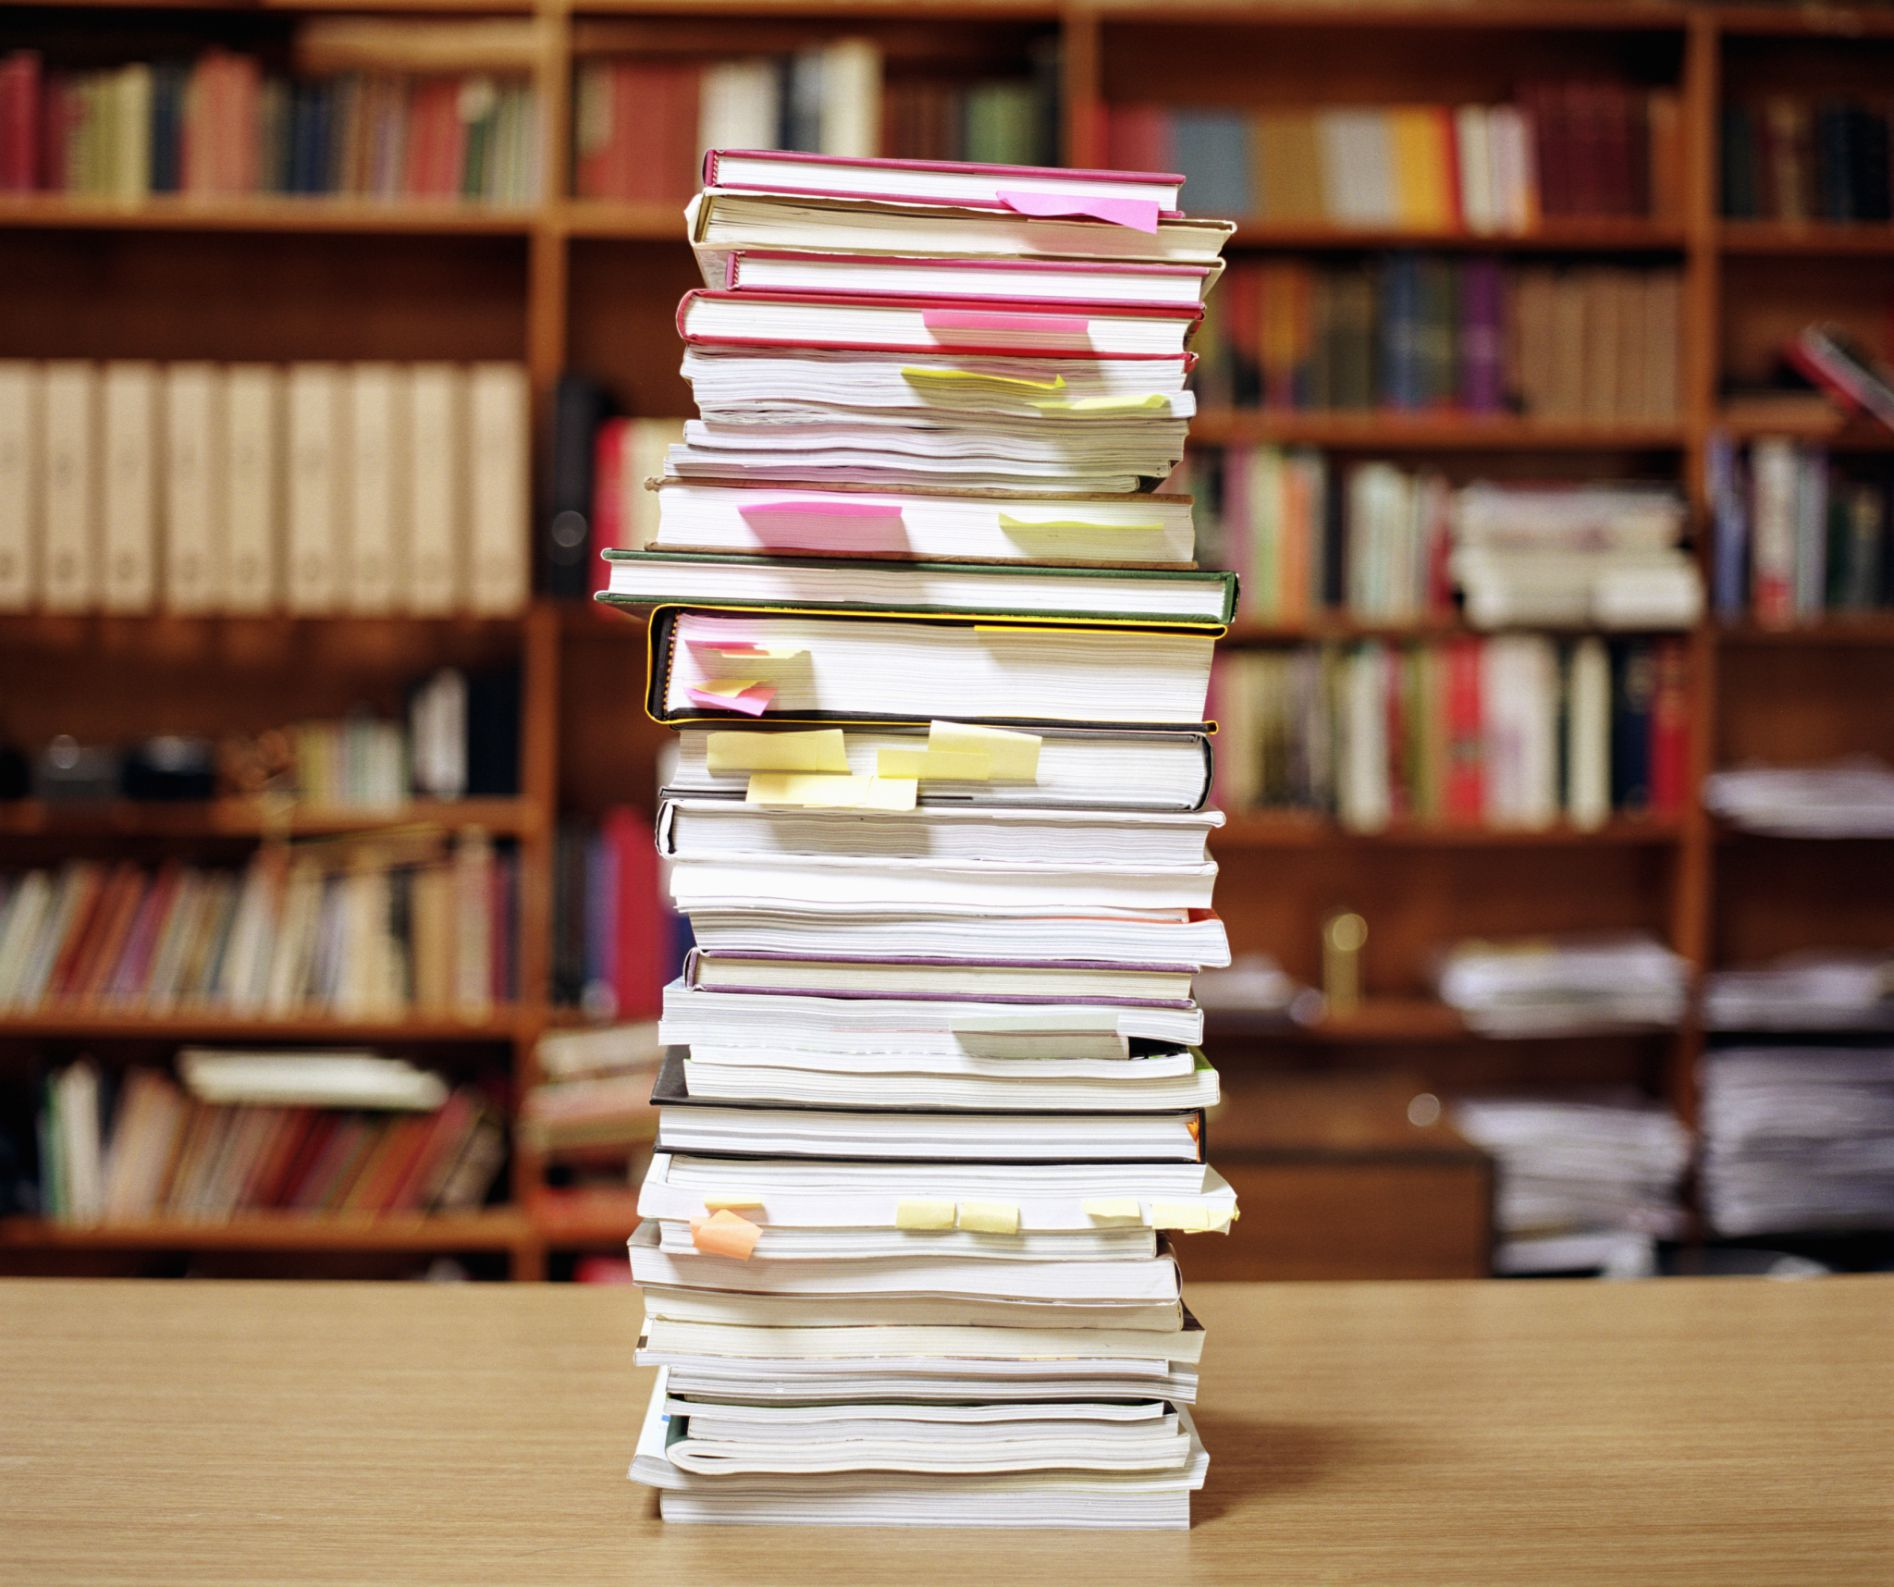 Small Investment Ideas Beginners: My 10 Favorite Classic Management And Leadership Books